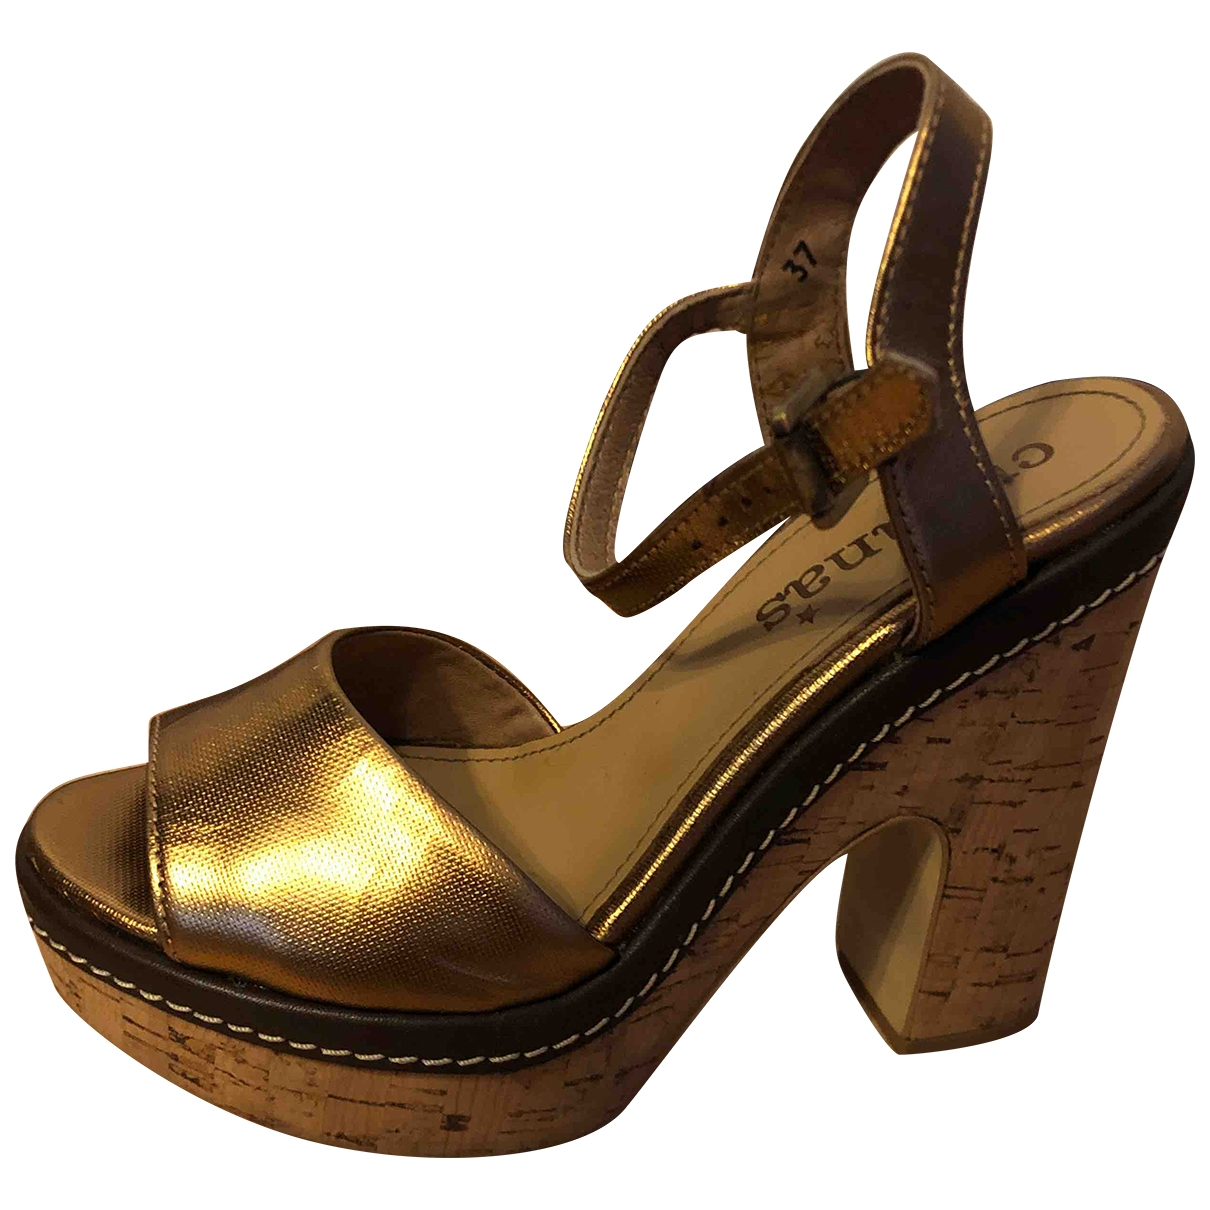 Non Signé / Unsigned \N Gold Leather Mules & Clogs for Women 37 EU